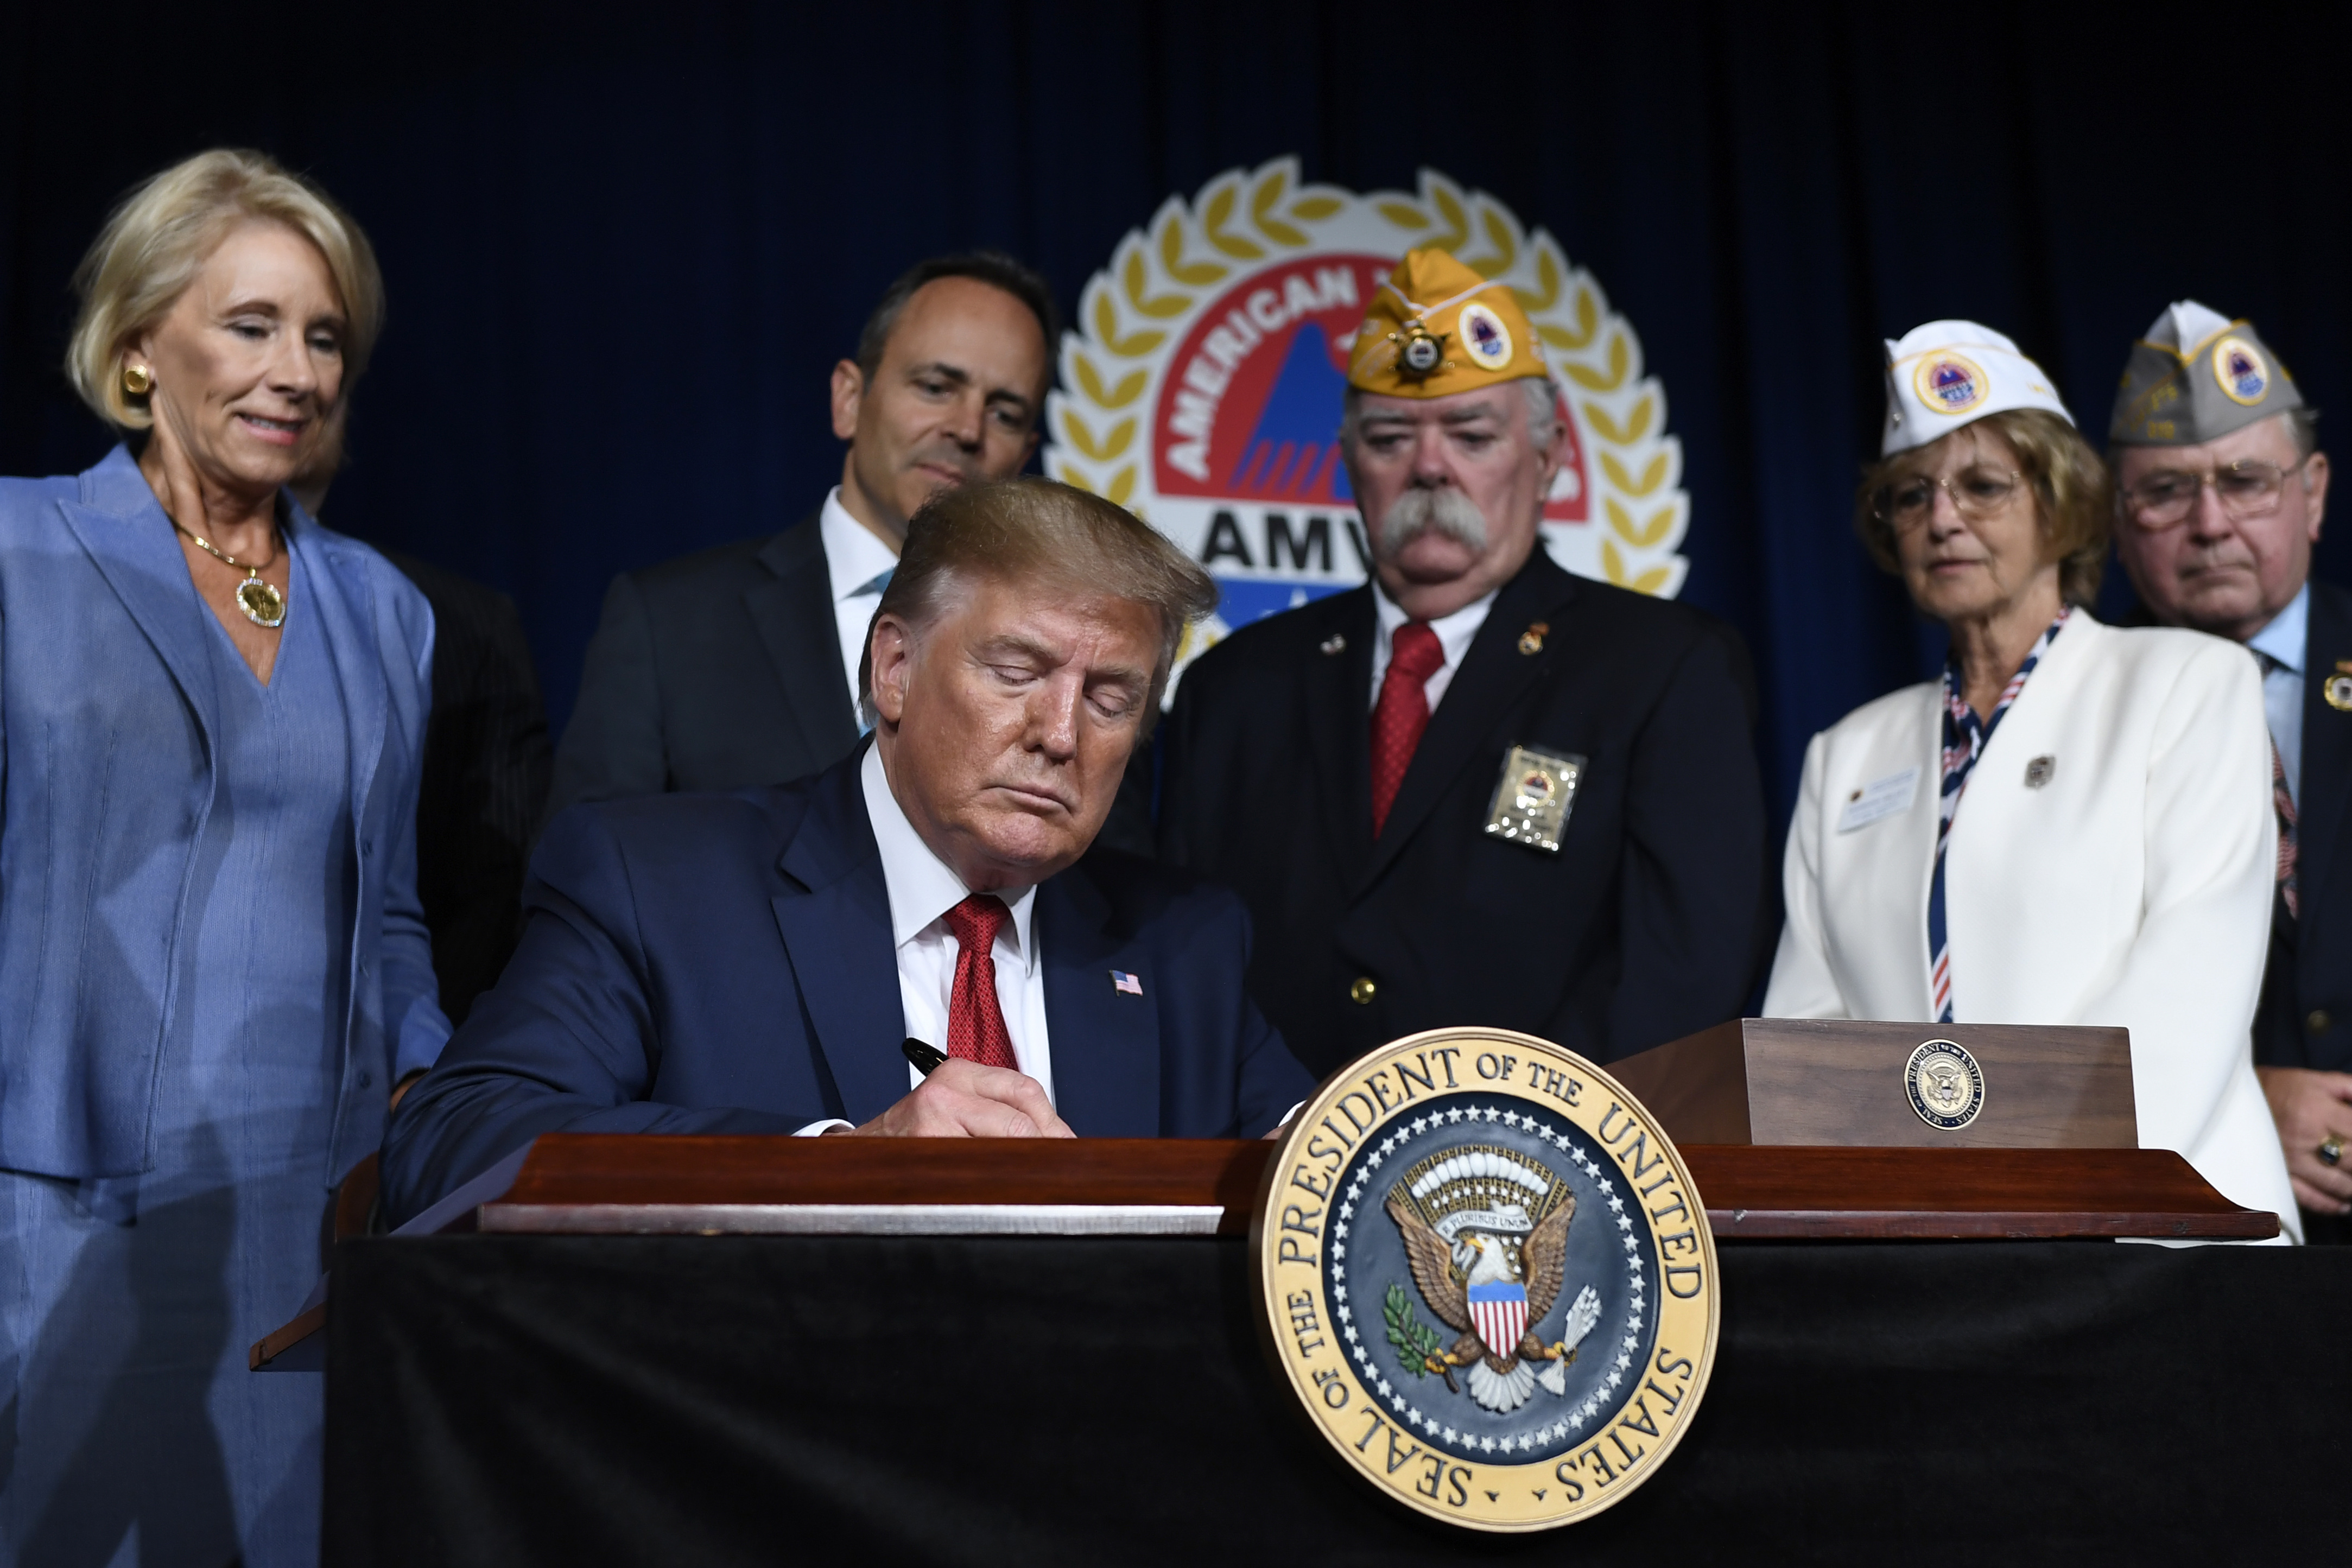 President Donald Trump signs a memorandum on veterans' student loan debt following his speech at the AMVETS 75th National Convention in Louisville, Ky., on Aug. 21, 2019. (Susan Walsh/AP)